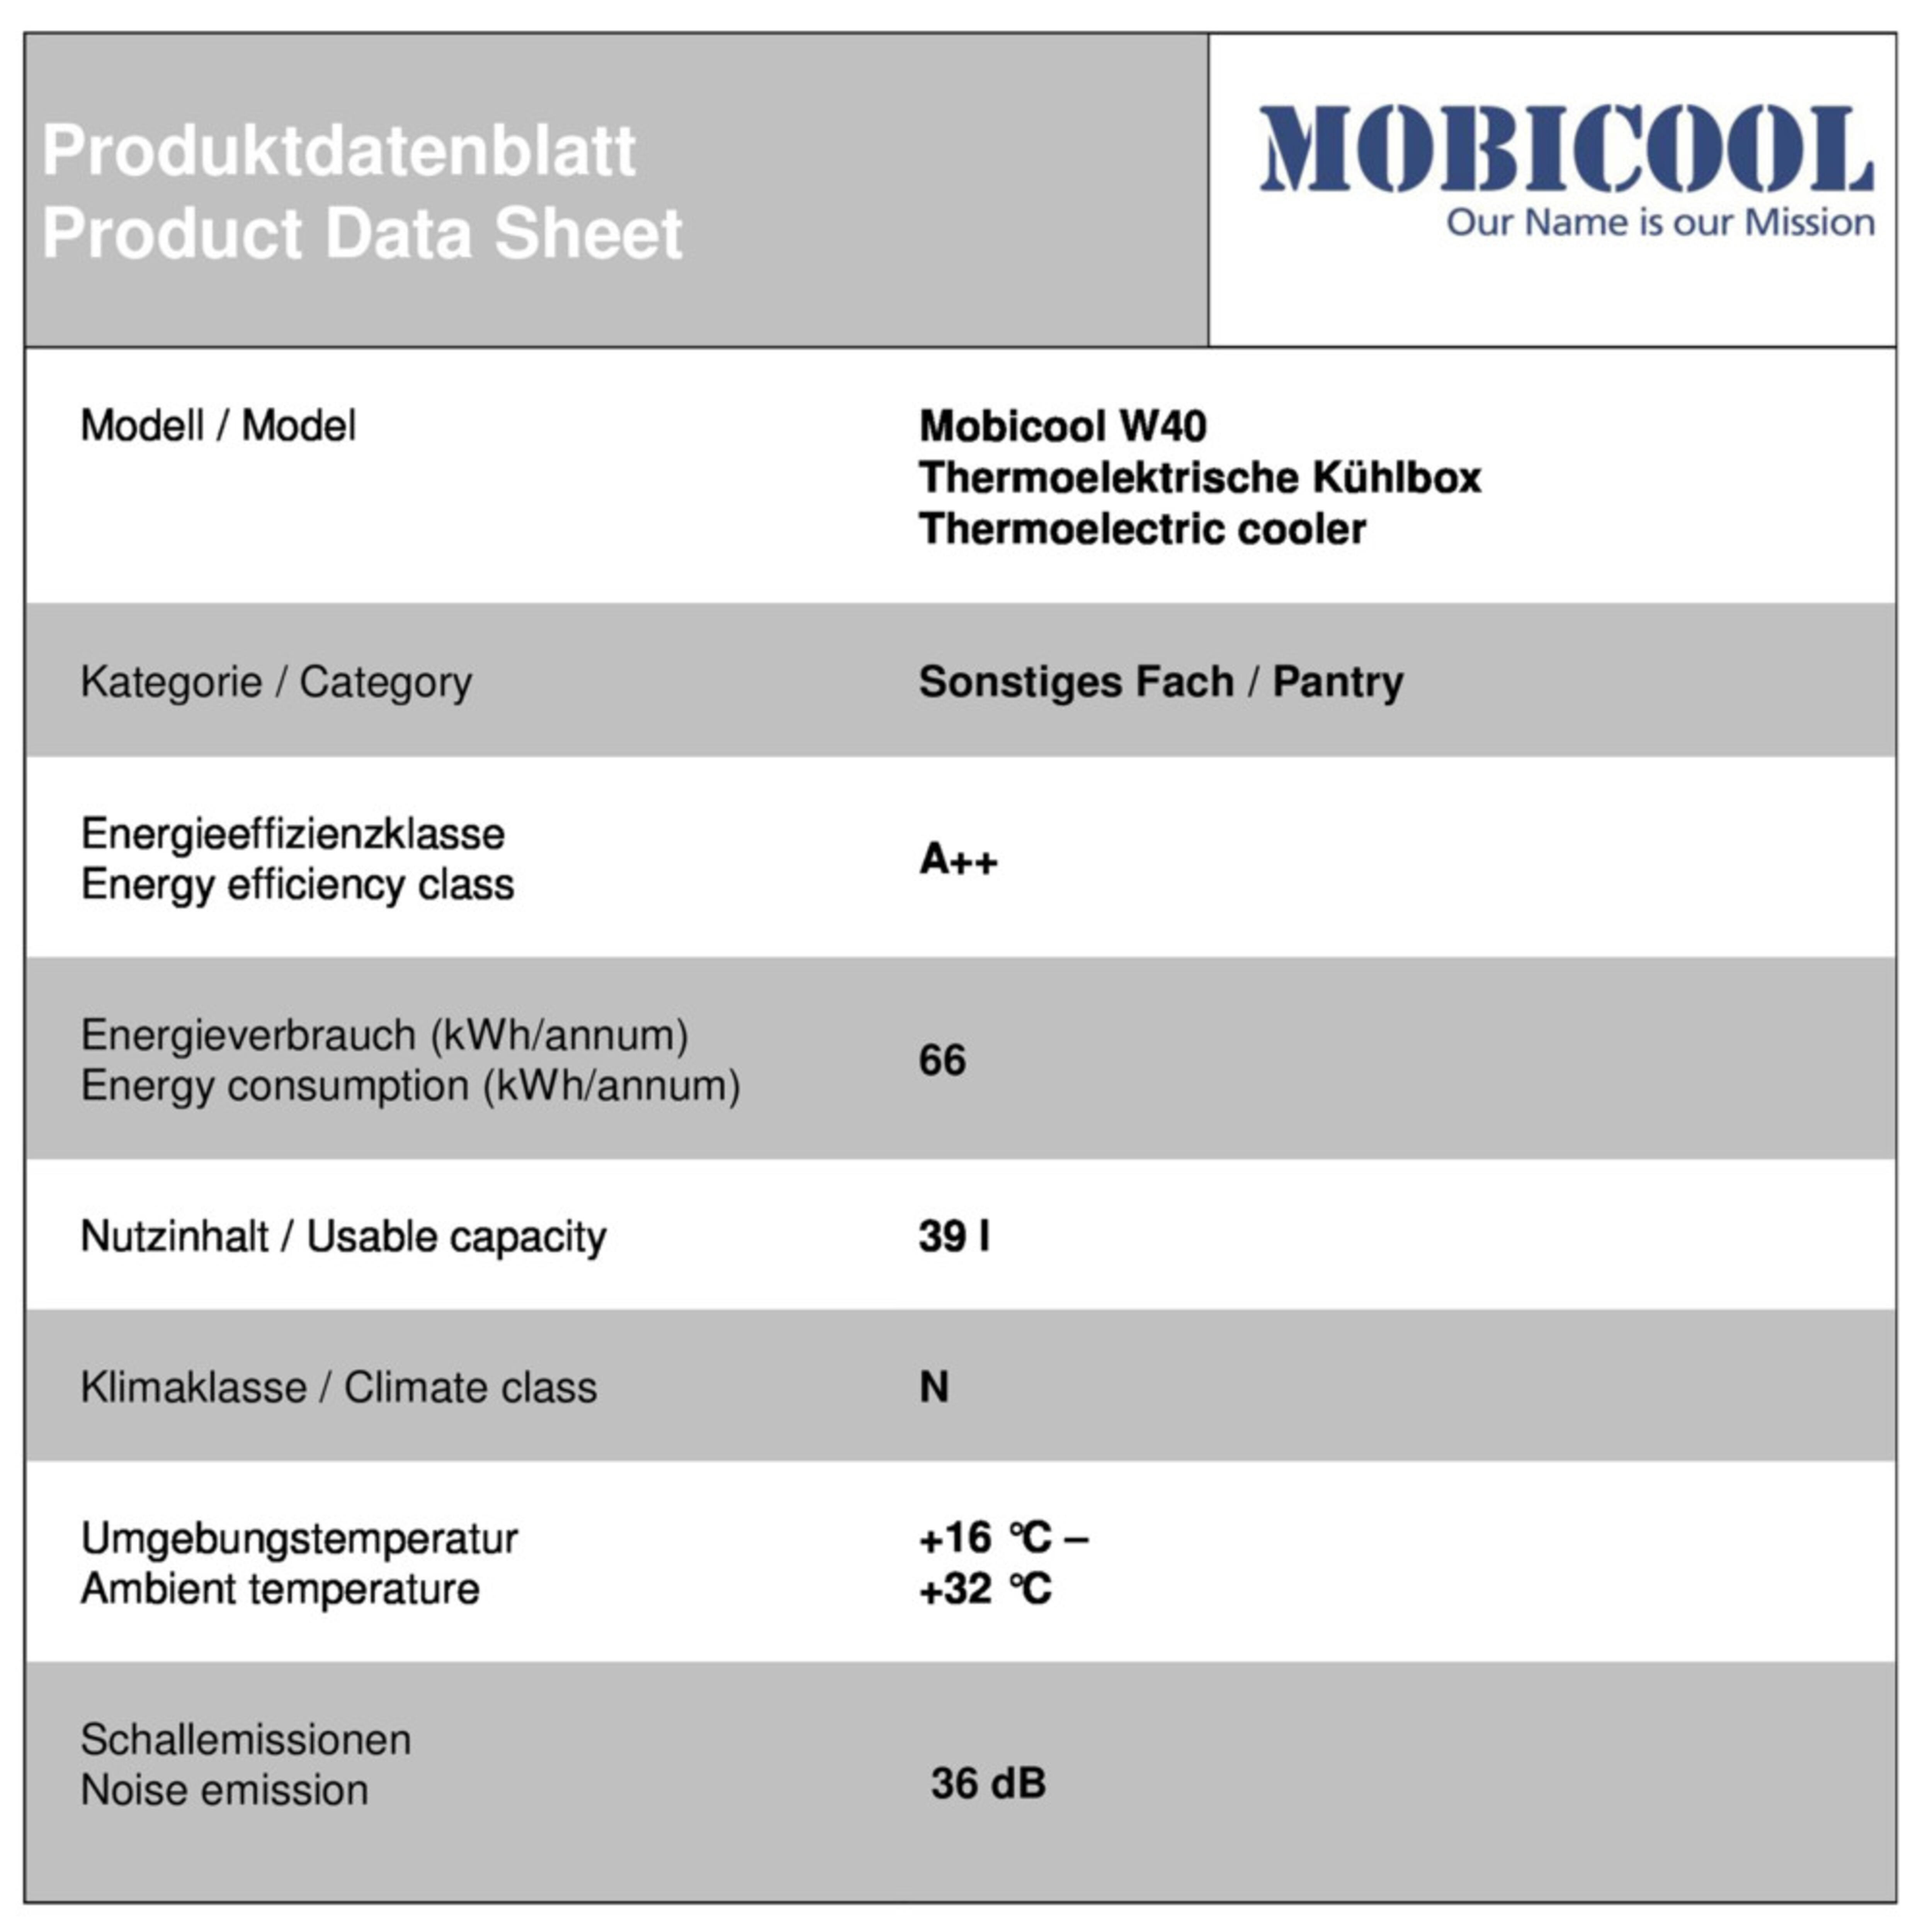 Mobicool W40 Energy data sheet